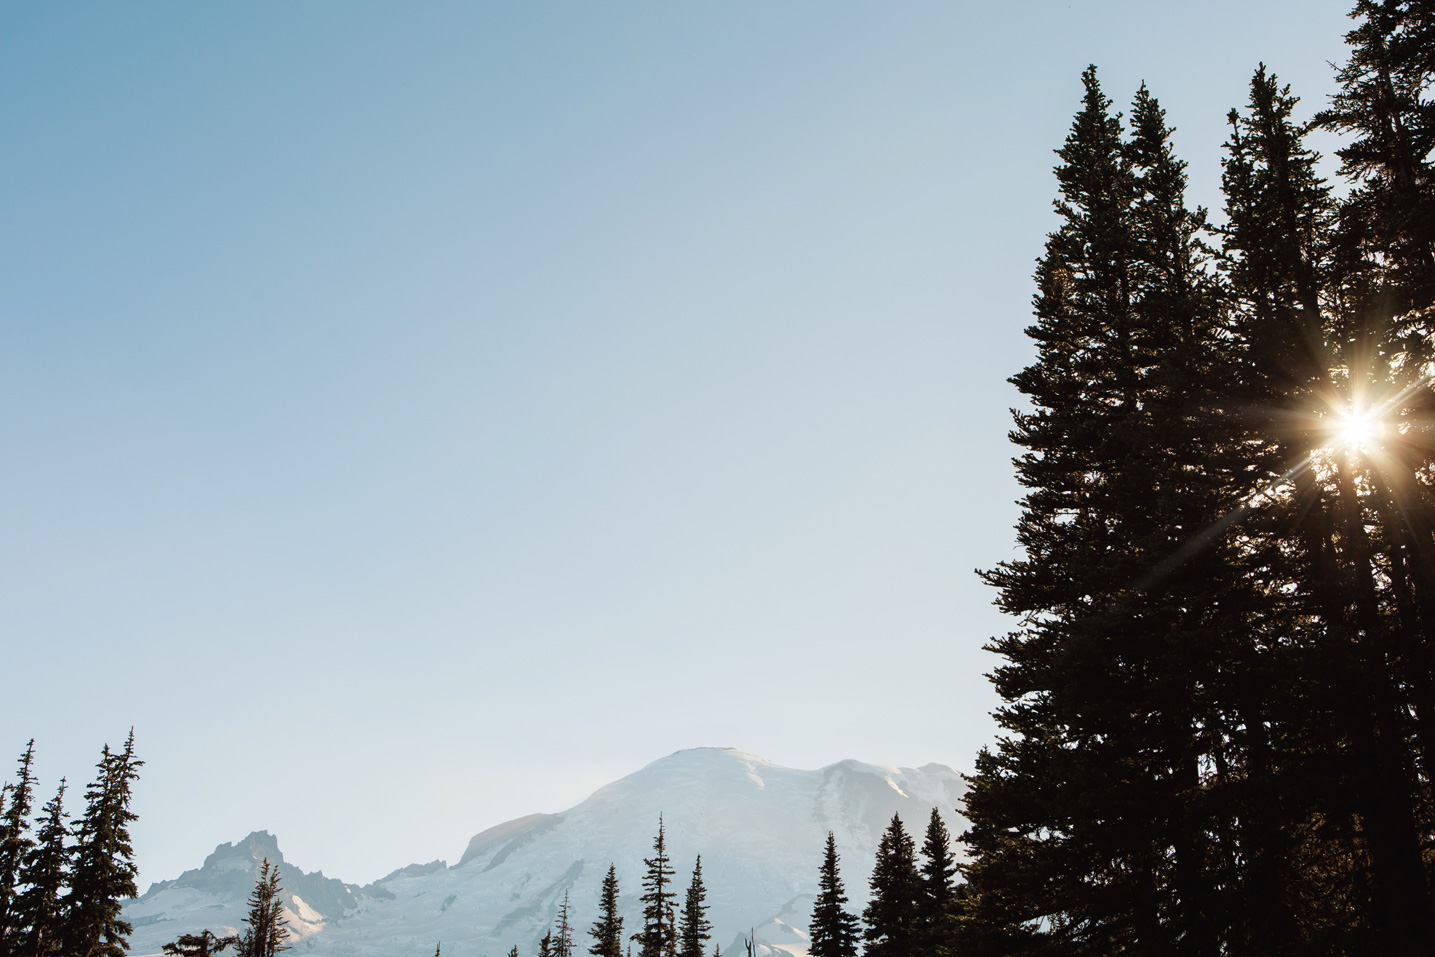 CindyGiovagnoli_Mount_Rainier_National_Park_Washington-008.jpg